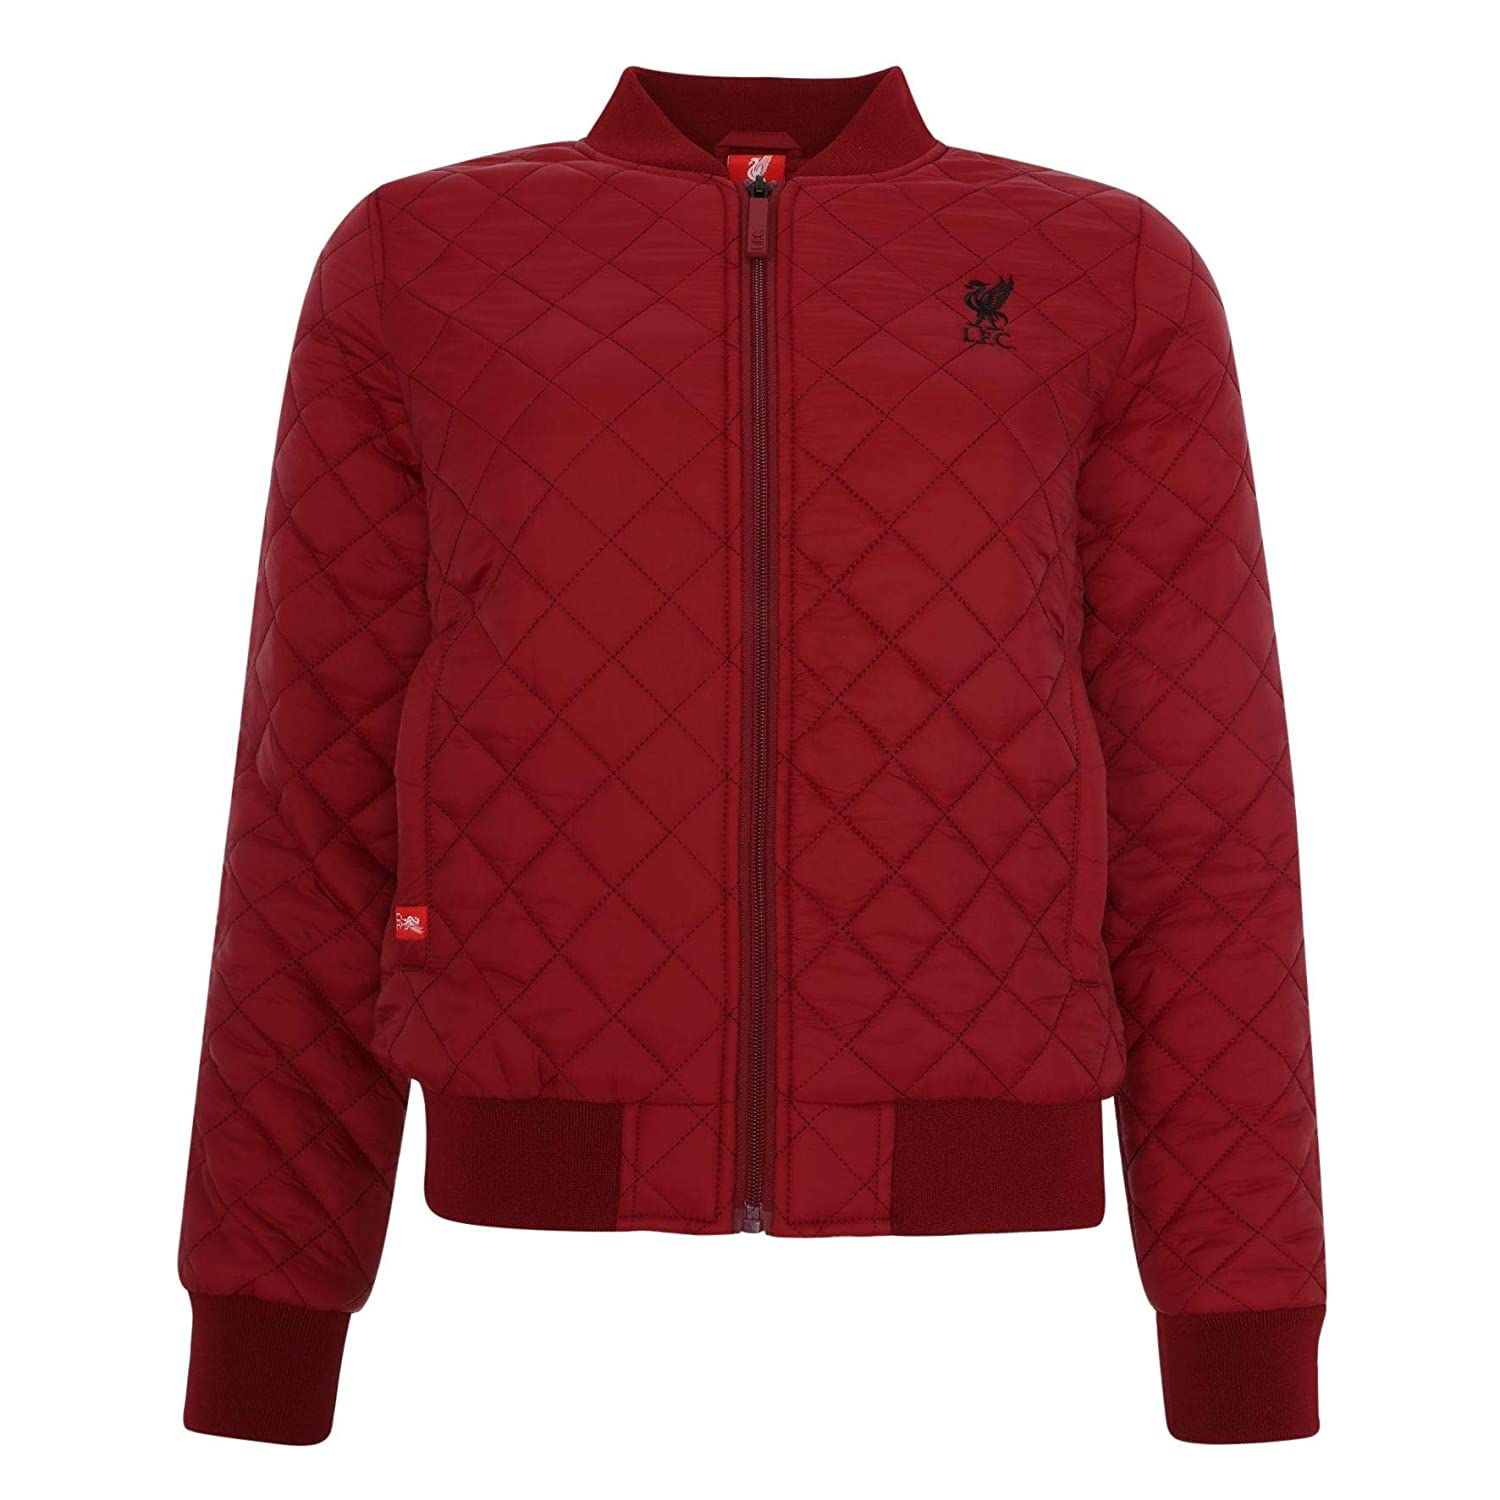 511576ec9 Liverpool FC Red Womens Football Quilted Bomber Jacket AW 18 19 LFC  Official  Amazon.co.uk  Clothing